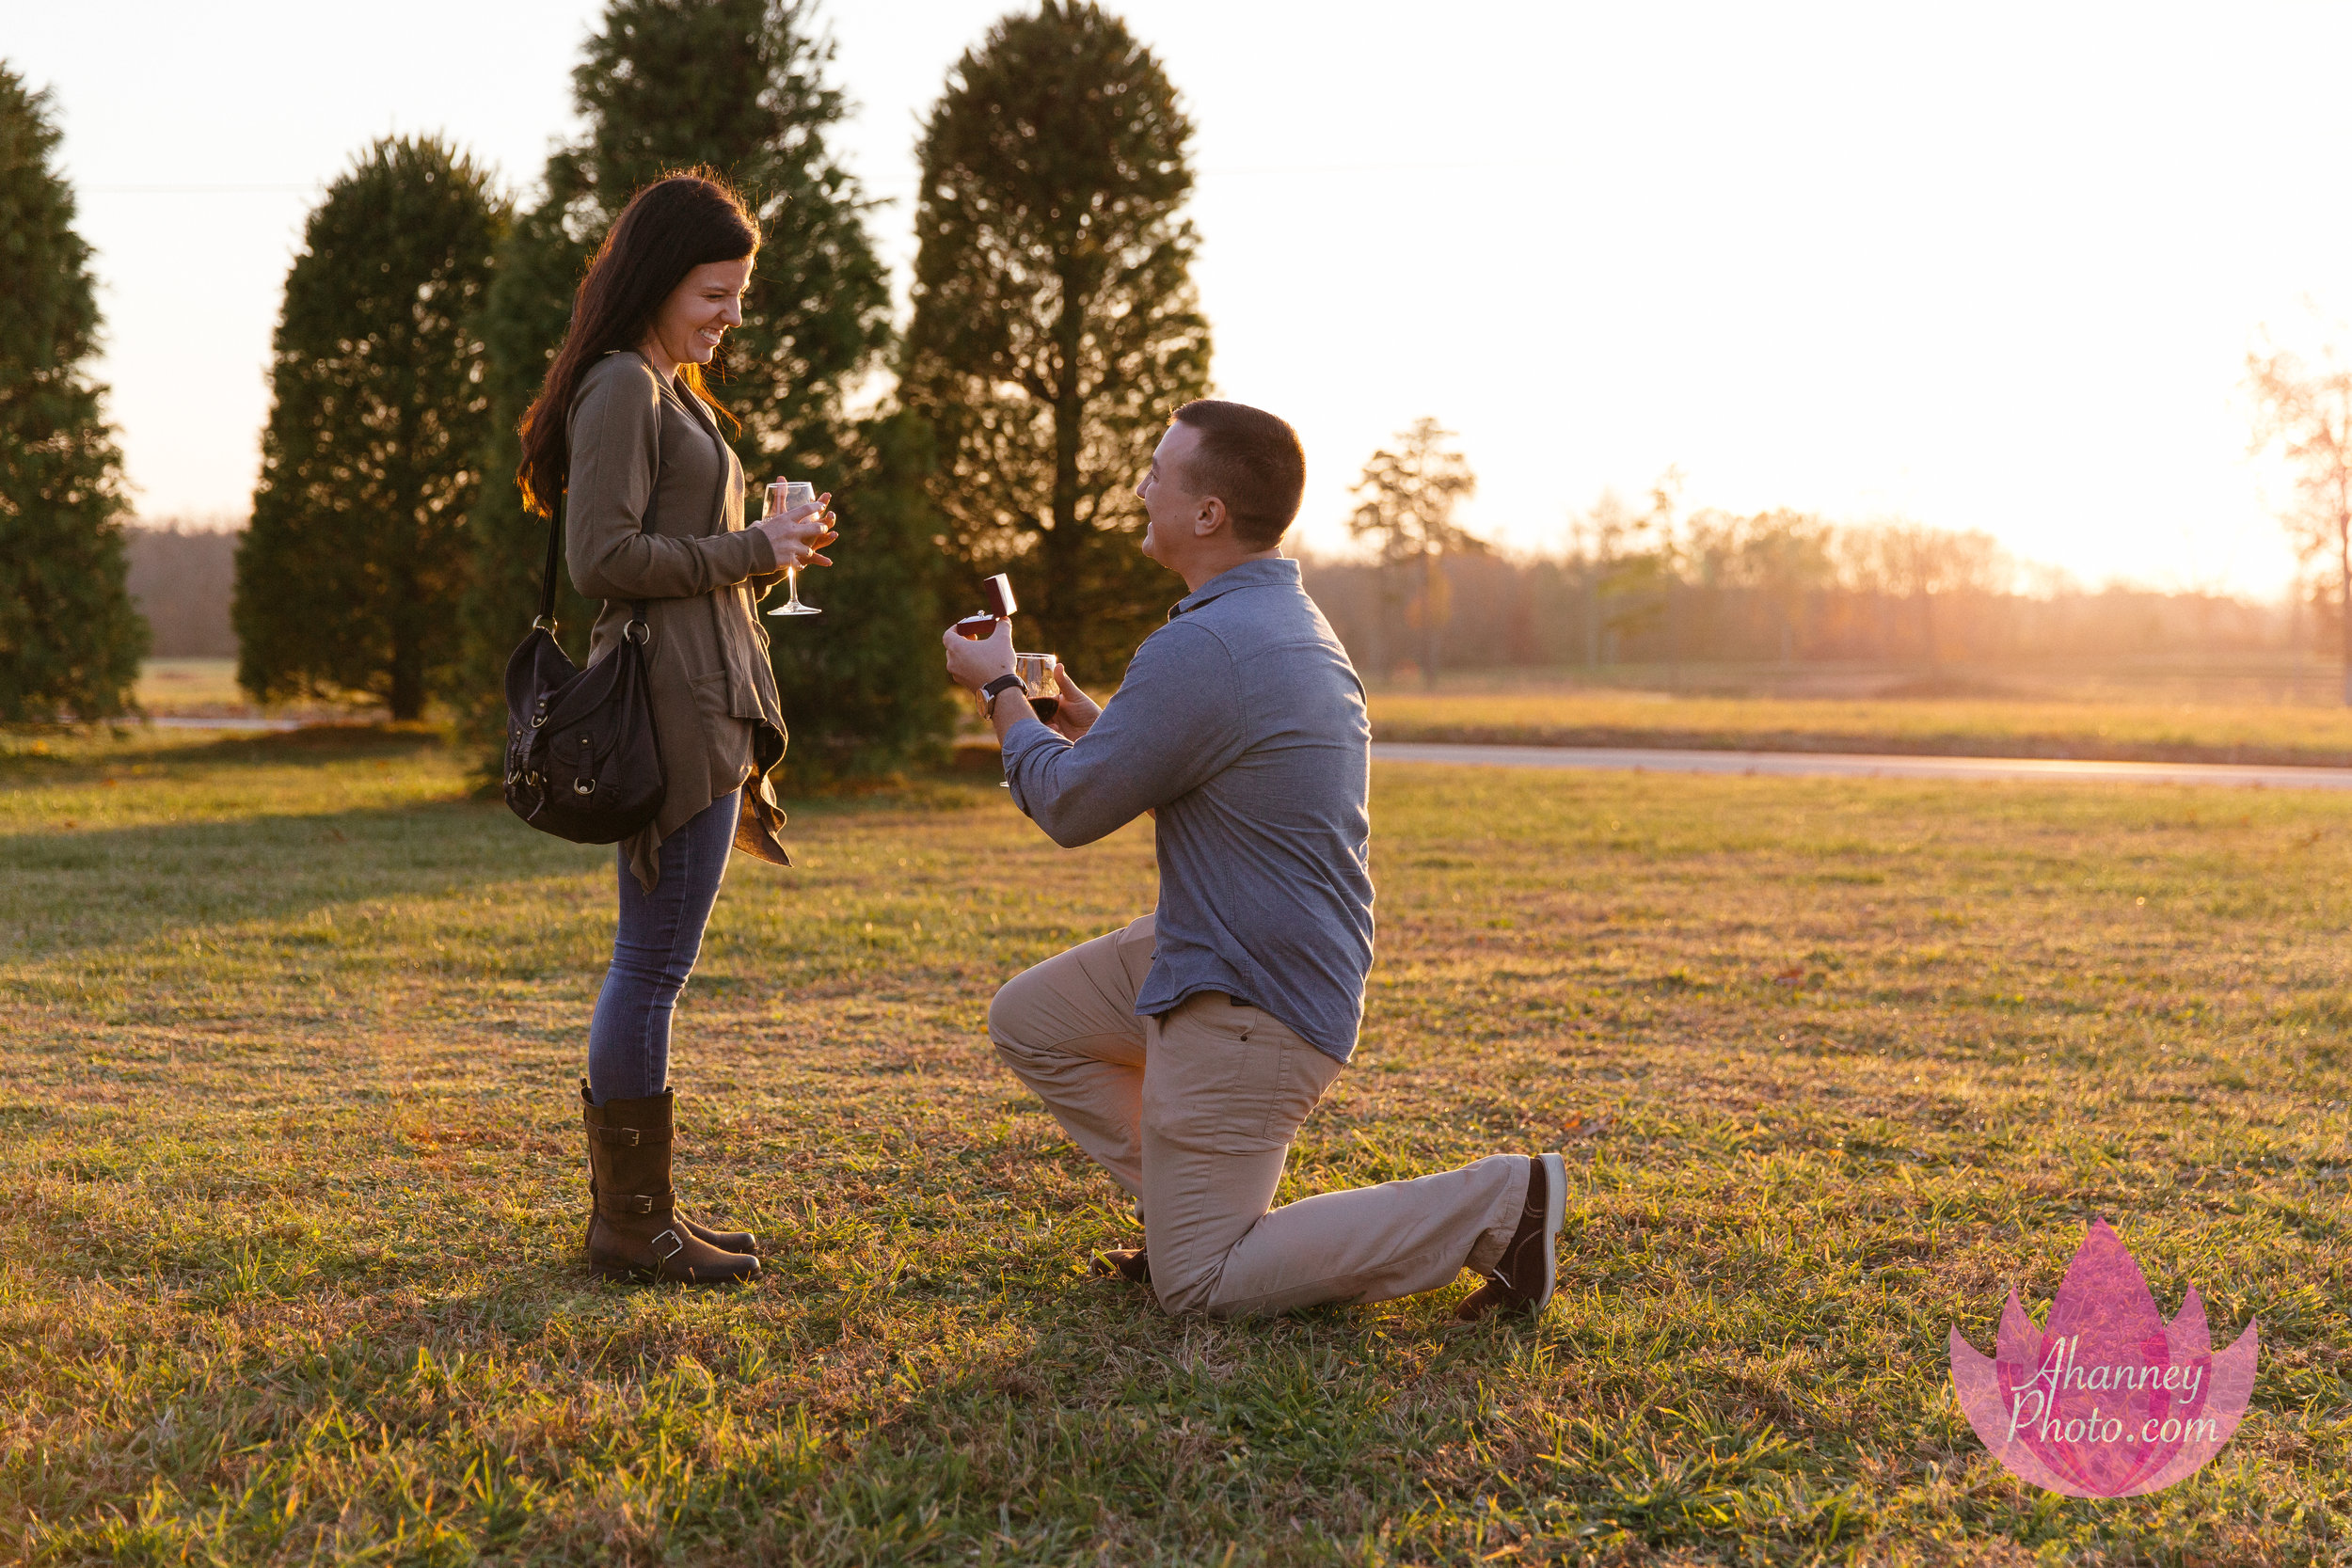 Proposal at White Horse Winery Engagement Photographer in Hammonton New Jersey She Said Yes Down on One Knee